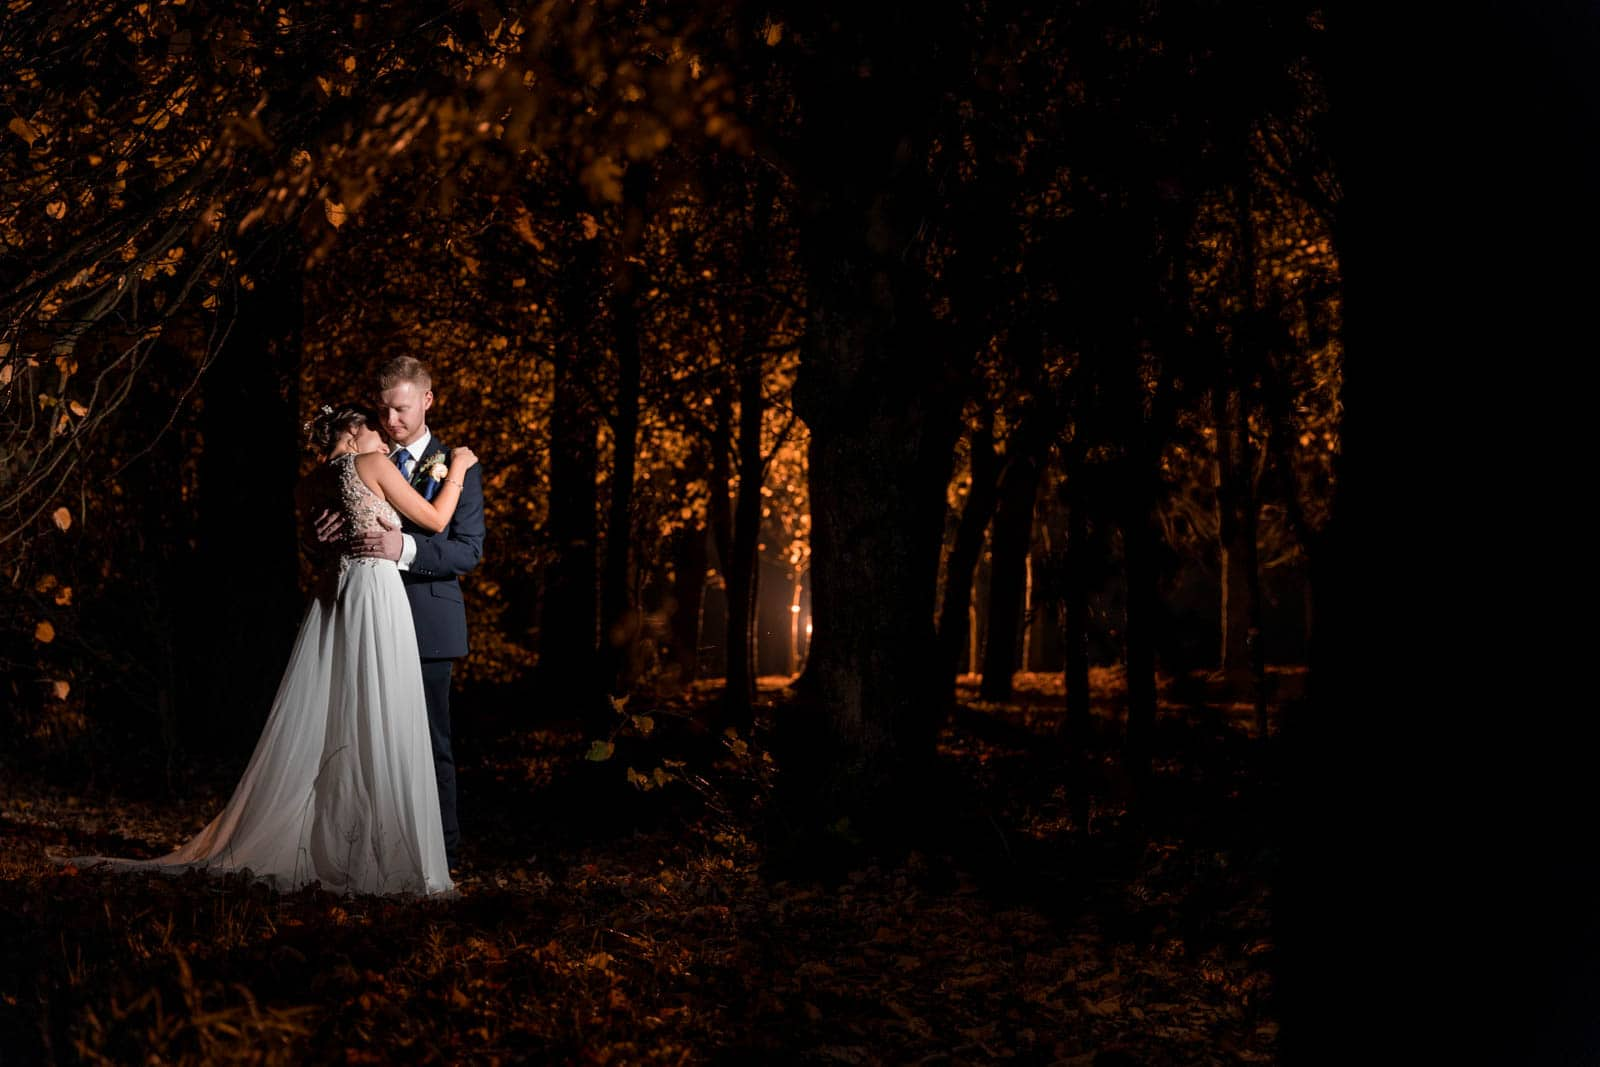 Beautiful ethereal wedding photo of the bride and groom standing in the woods